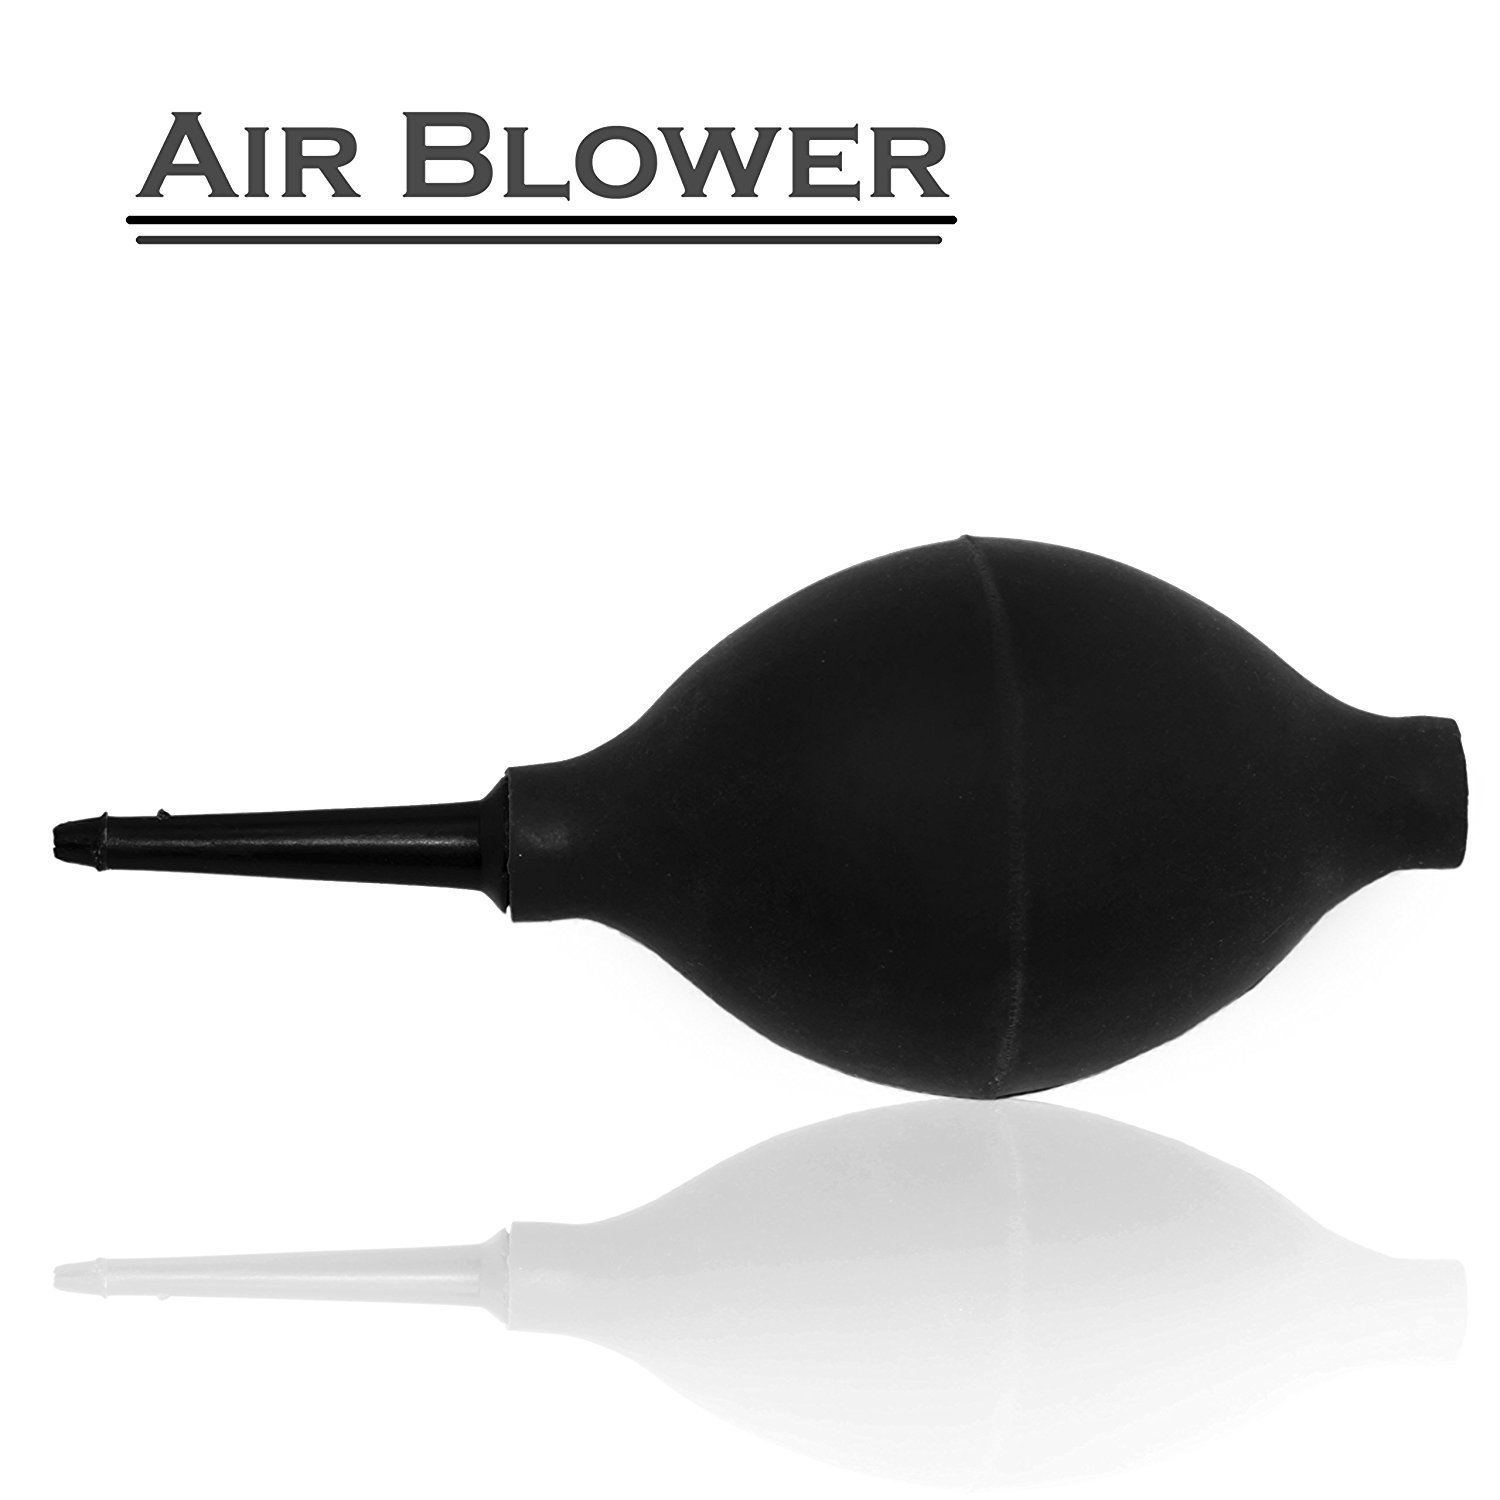 Storite Rubber Air Pump Cleaner Dust Blower For Keyboard,Digital Slr Camera, Lens, Watch, Cell Phone, Computer Laptop Pc And Screen